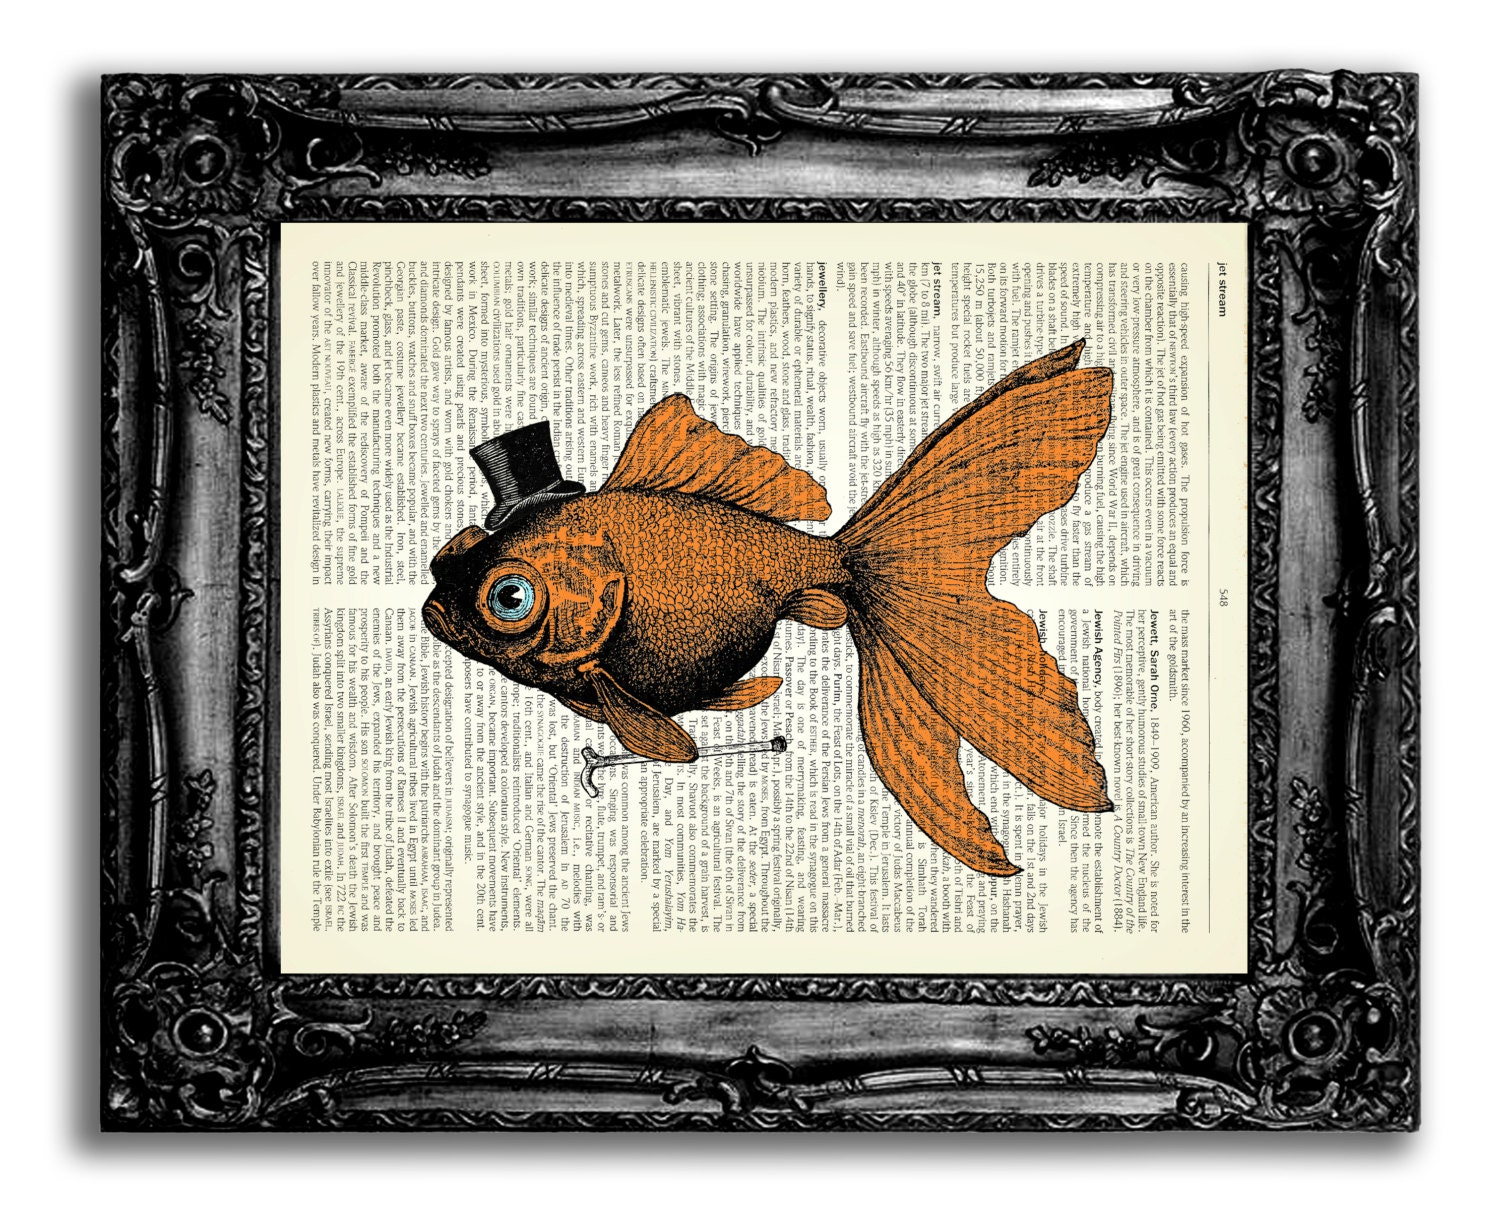 goldfish in top hat with cane vintage dictionary art print